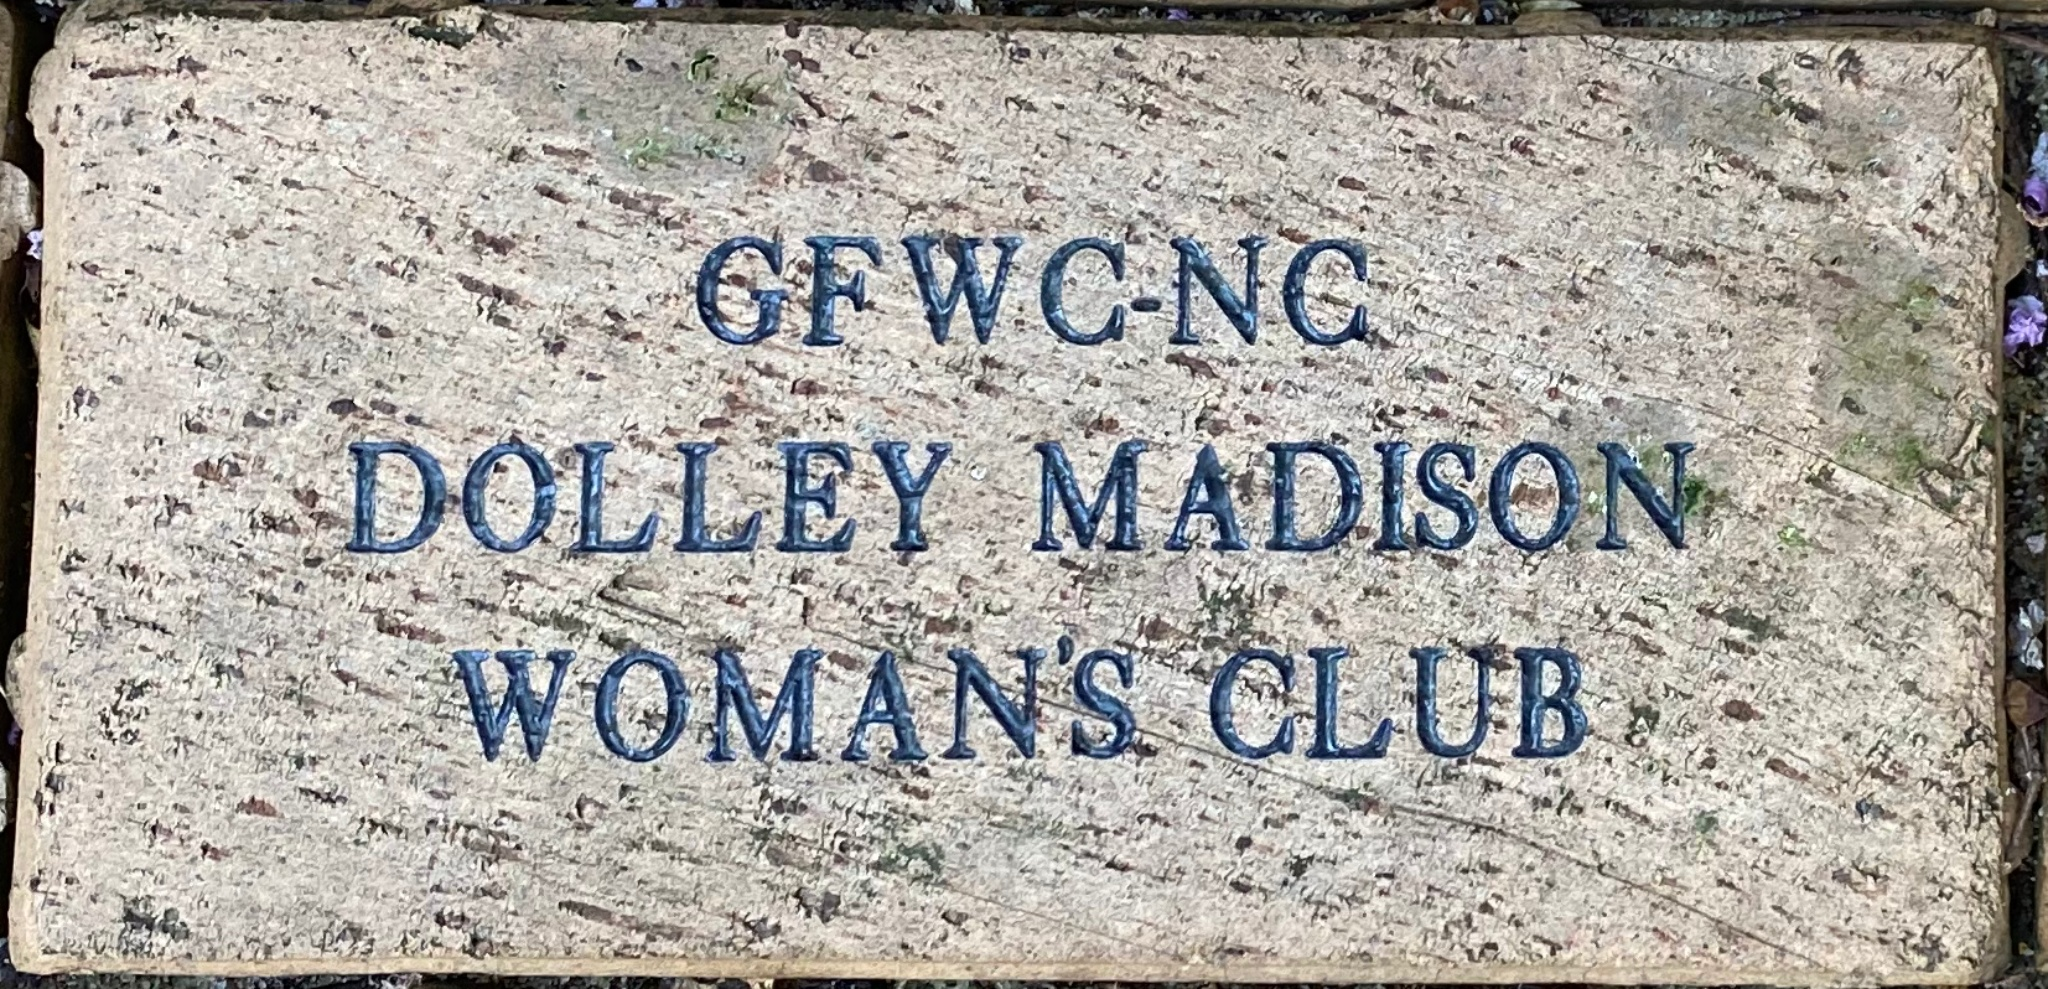 GFWC NC DOLLEY MADISON WOMAN'S CLUB